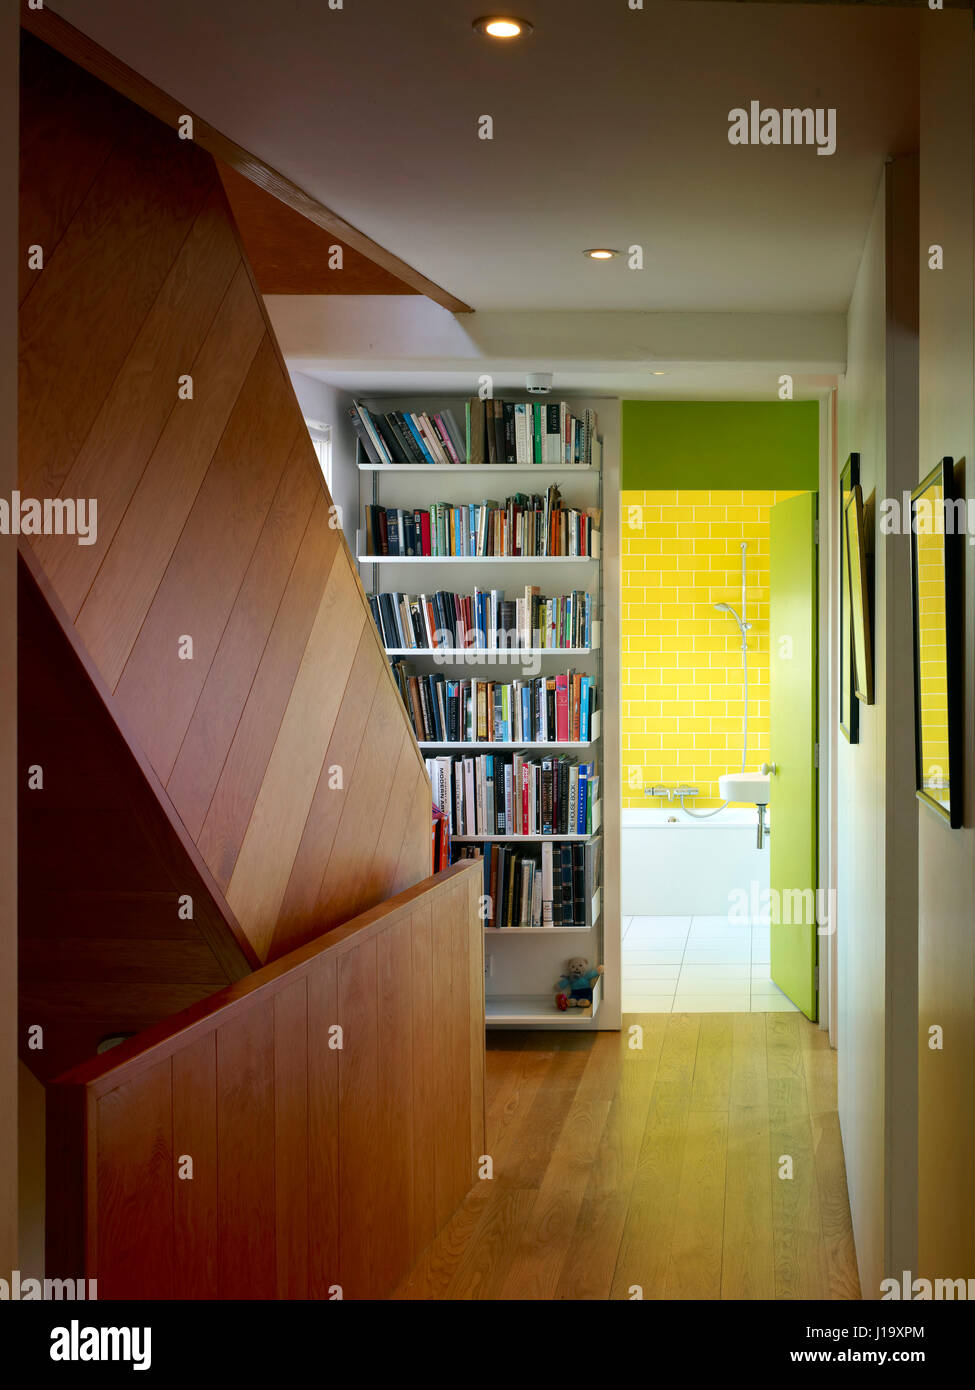 Stair, Bookcase, Bathroom. Ellingford Rd, London, United Kingdom.  Architect: Cassion Castle Architects, 2012.